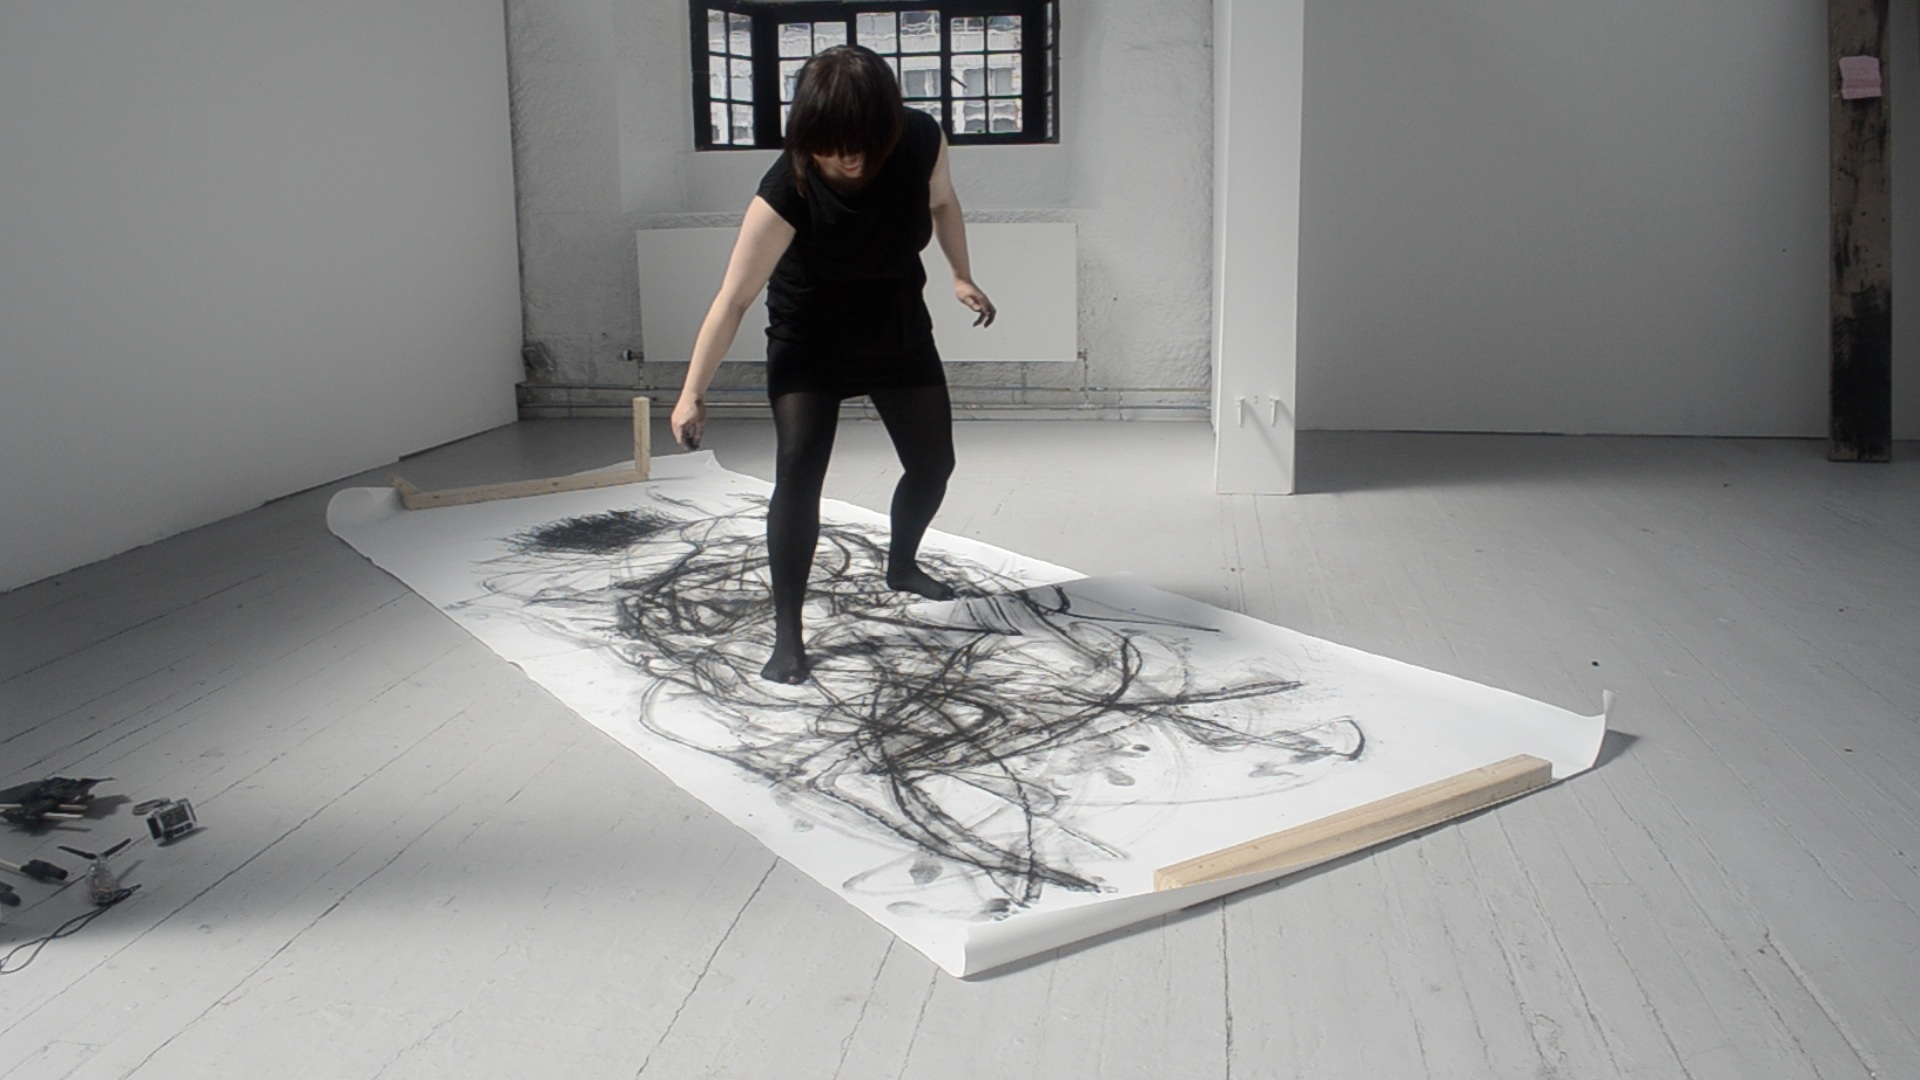 09 Elina Aho, from series Performative Drawings, still image from moving image, 2012.jpg